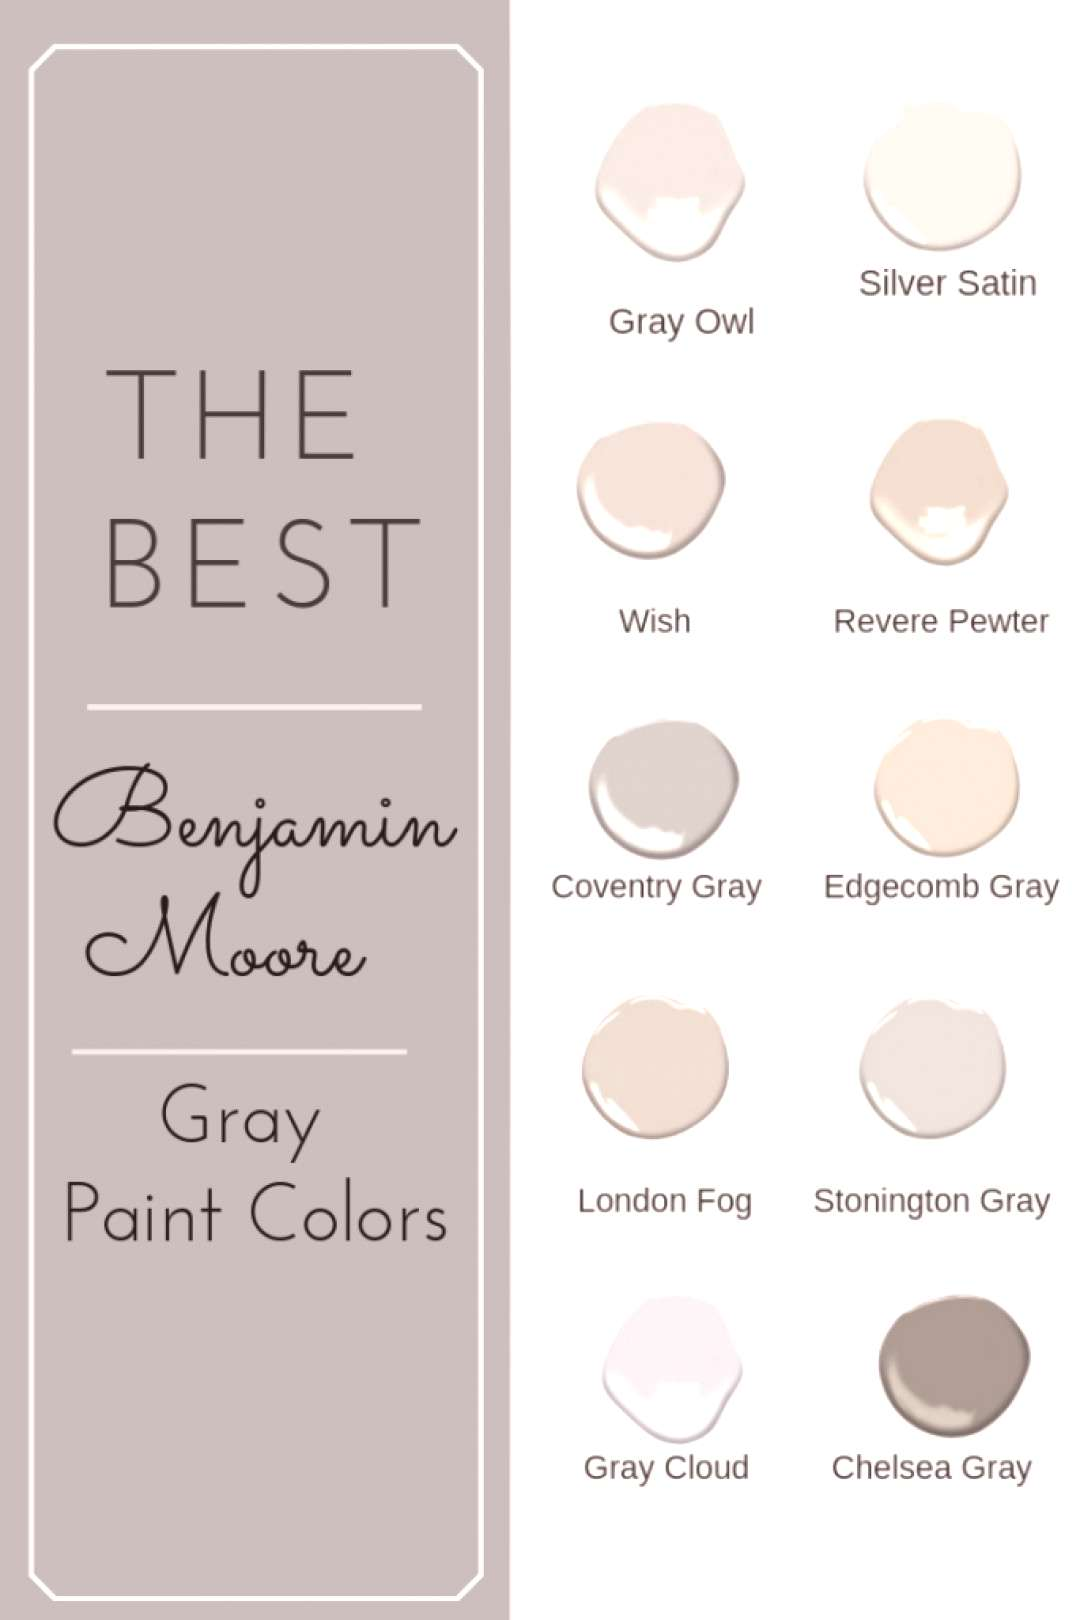 Struggling to find the perfect Benjamin Moore gray paint color? Struggle no more! Click to find you